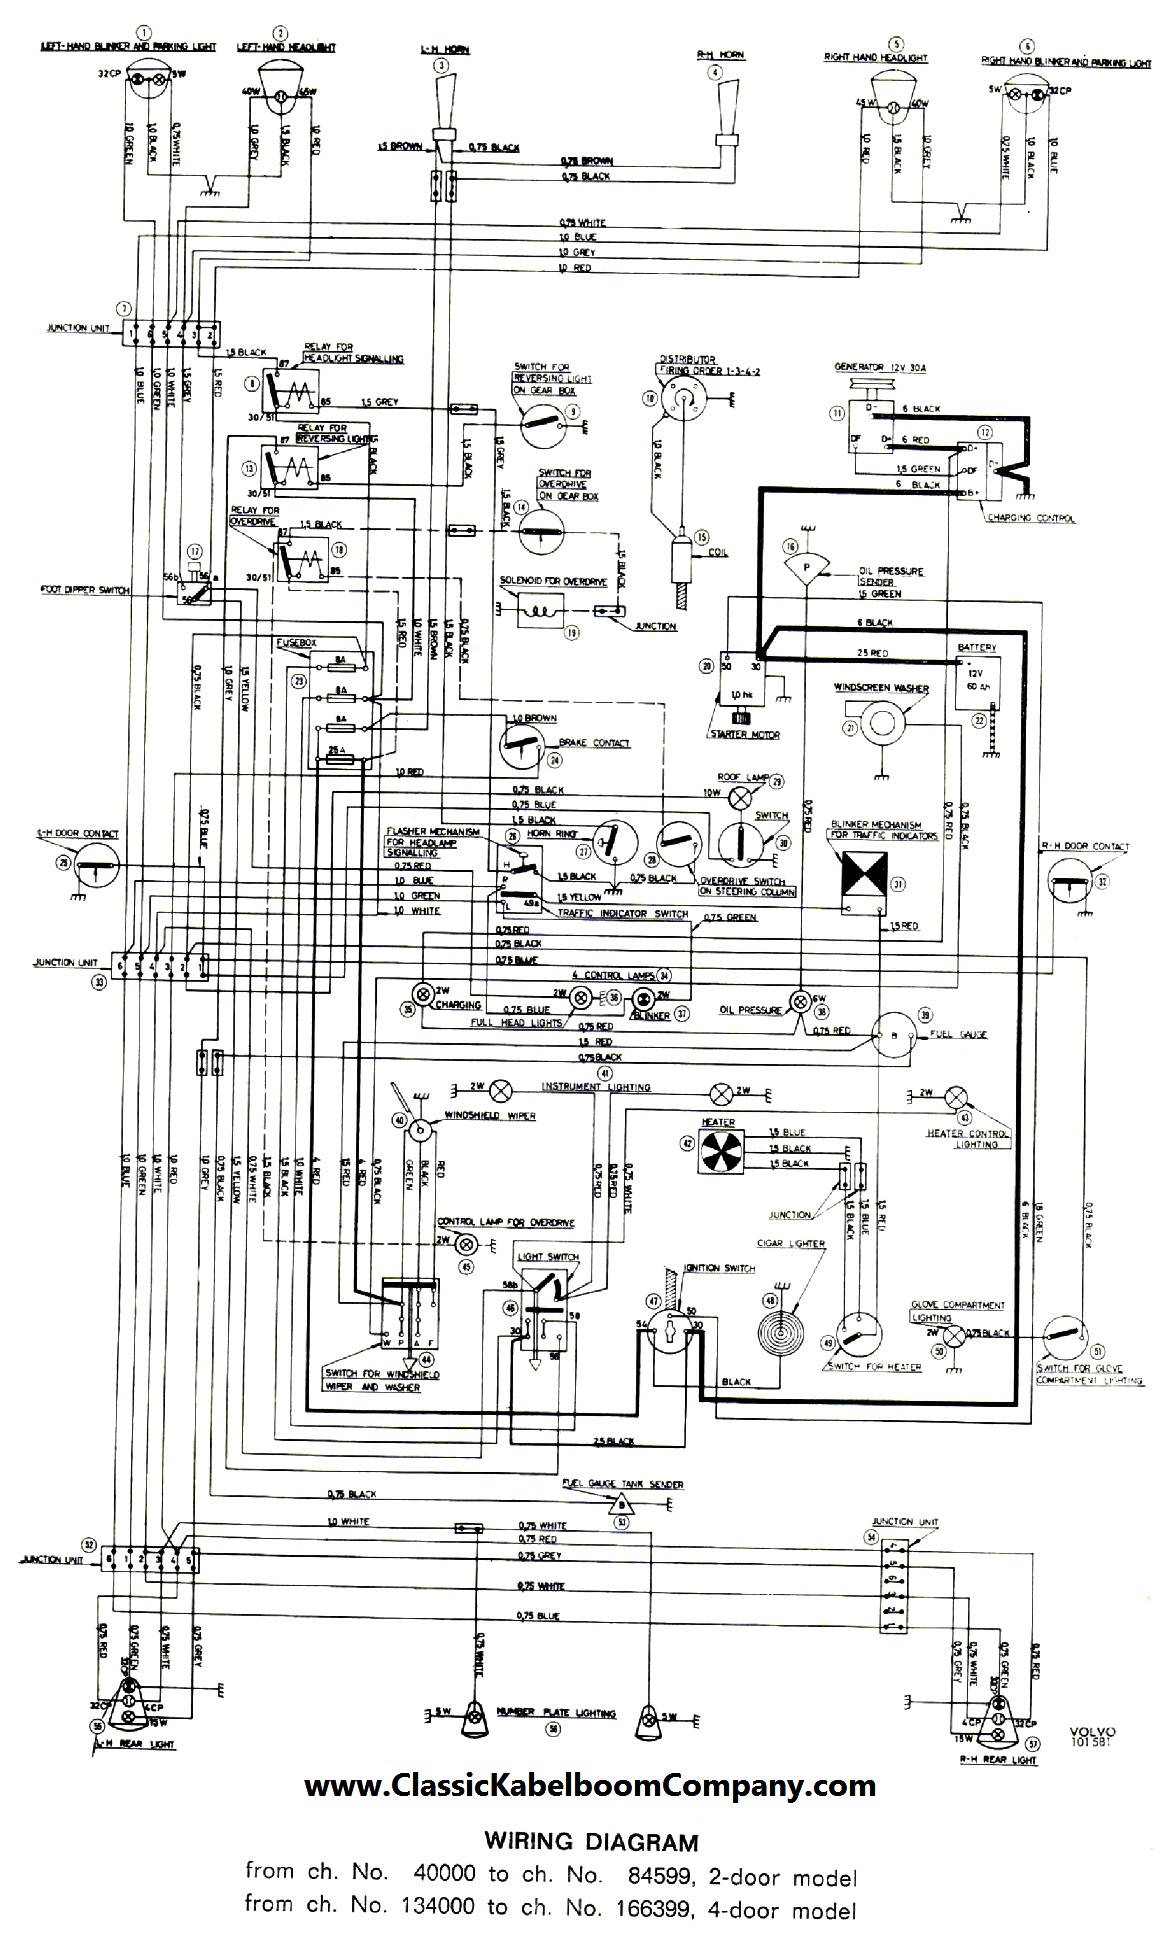 Snap Volvo L70d Wiring Diagram K Grayengineeringeducation Com Photos Volvo  L90 Volvo L70d Wiring Diagram